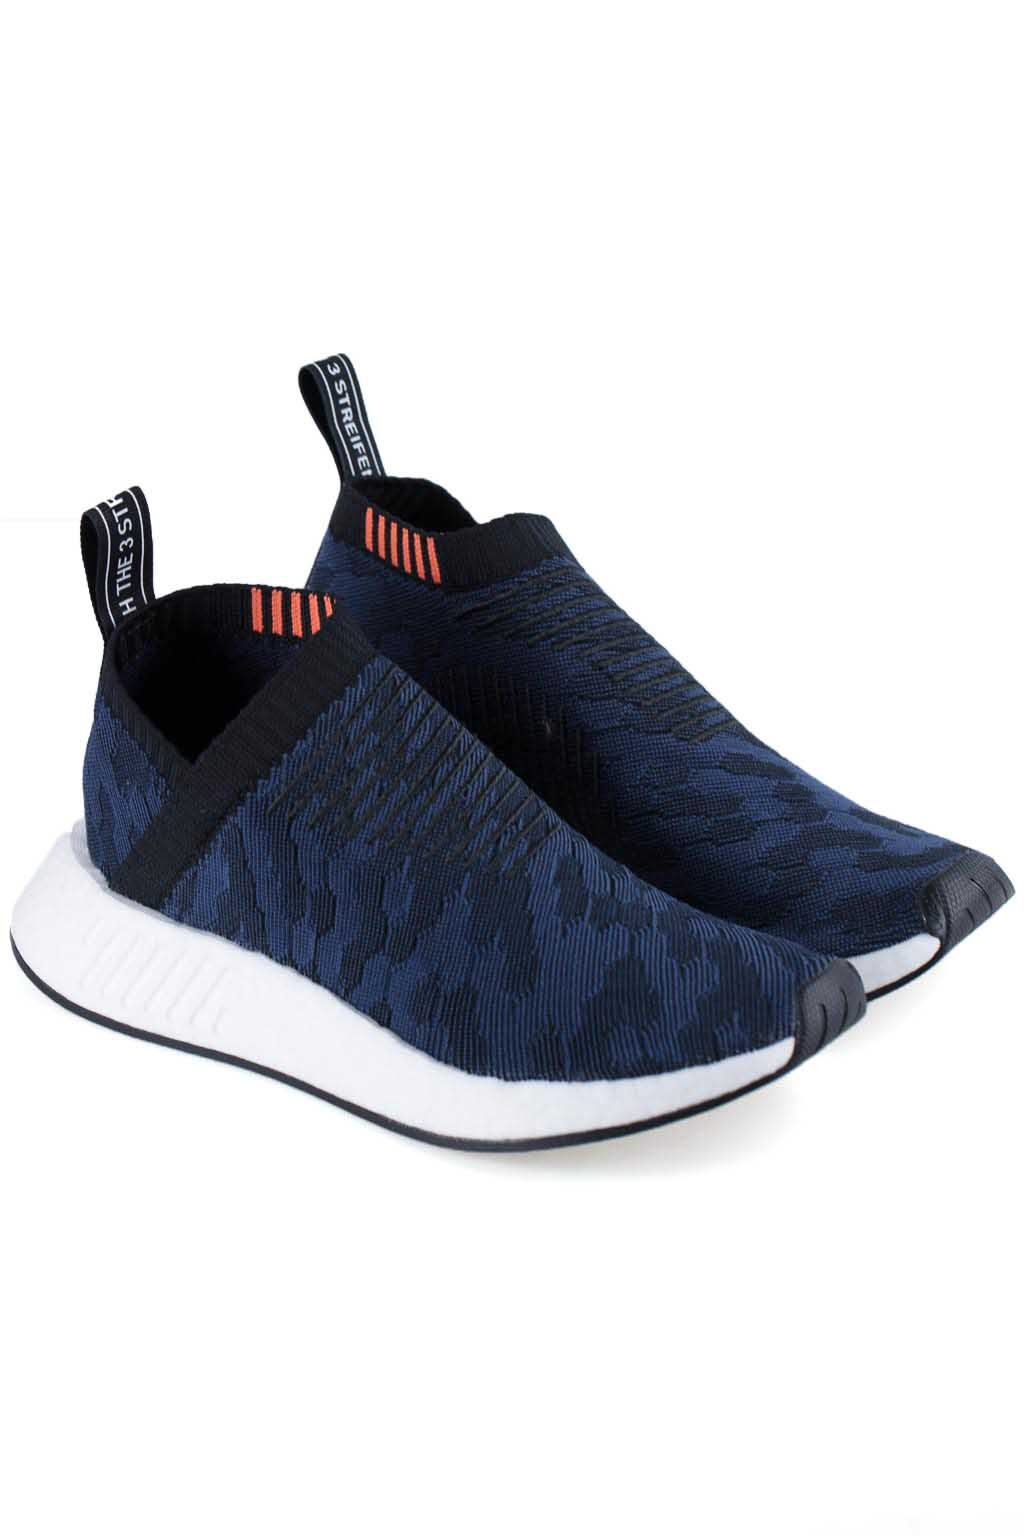 NMD_CS2 PK W  - Core Blue